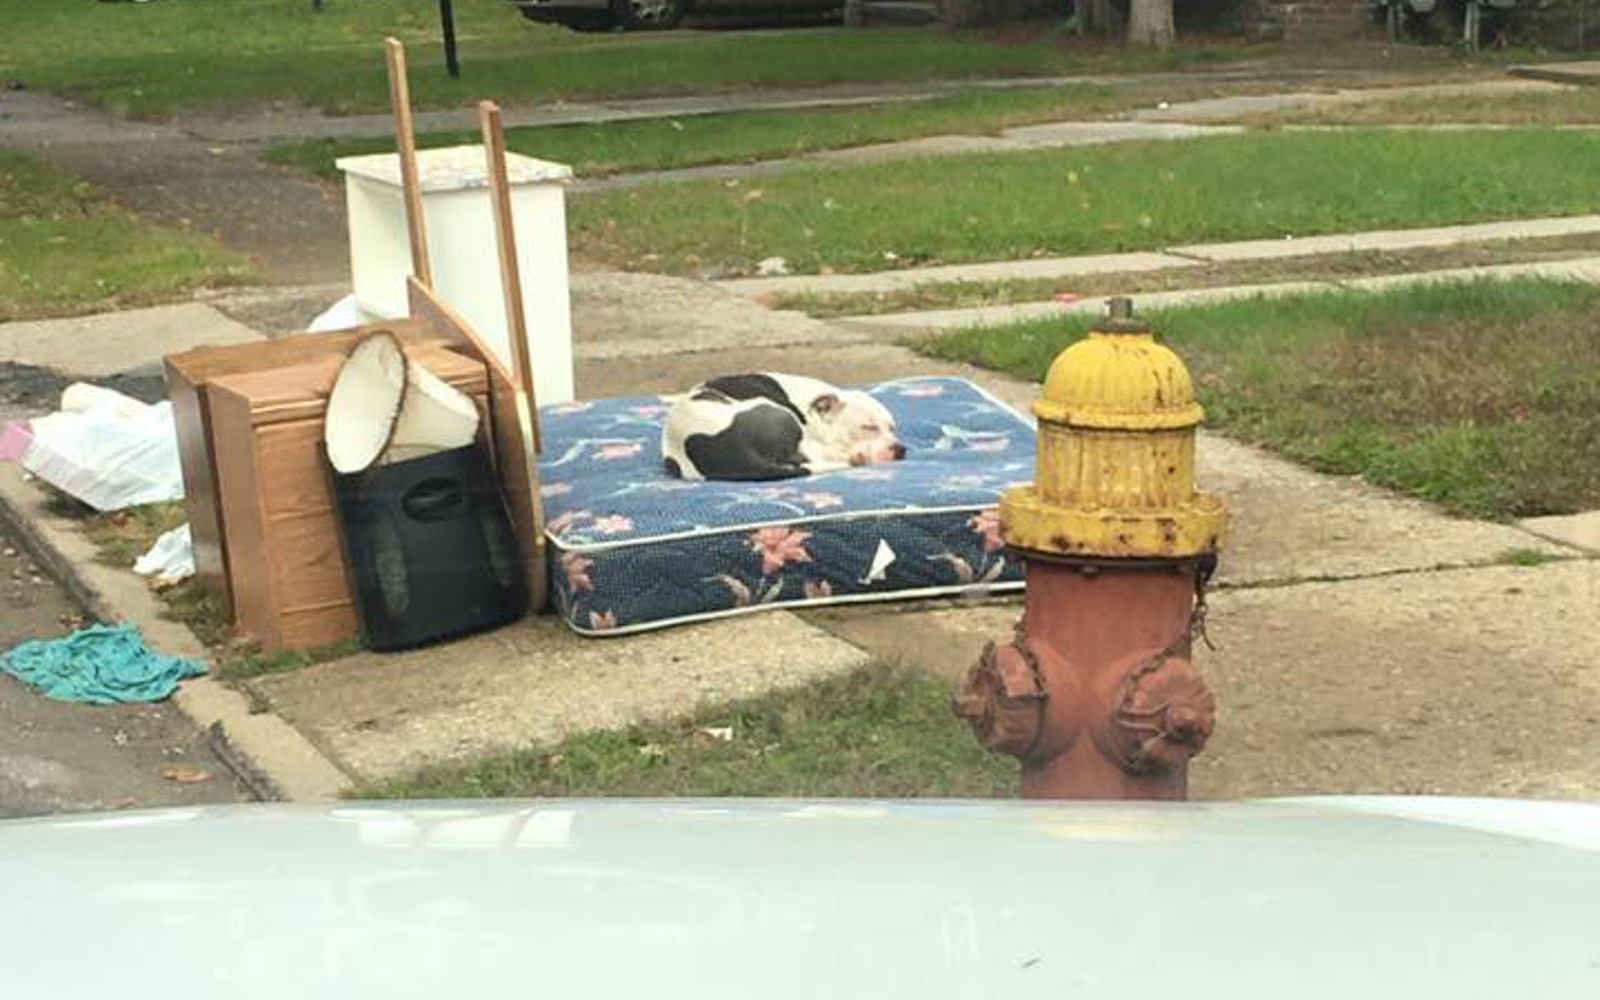 When This Dog's Family Moved and Left Their Unwanted Belongings on the Curb, He Stayed There and Waited With It